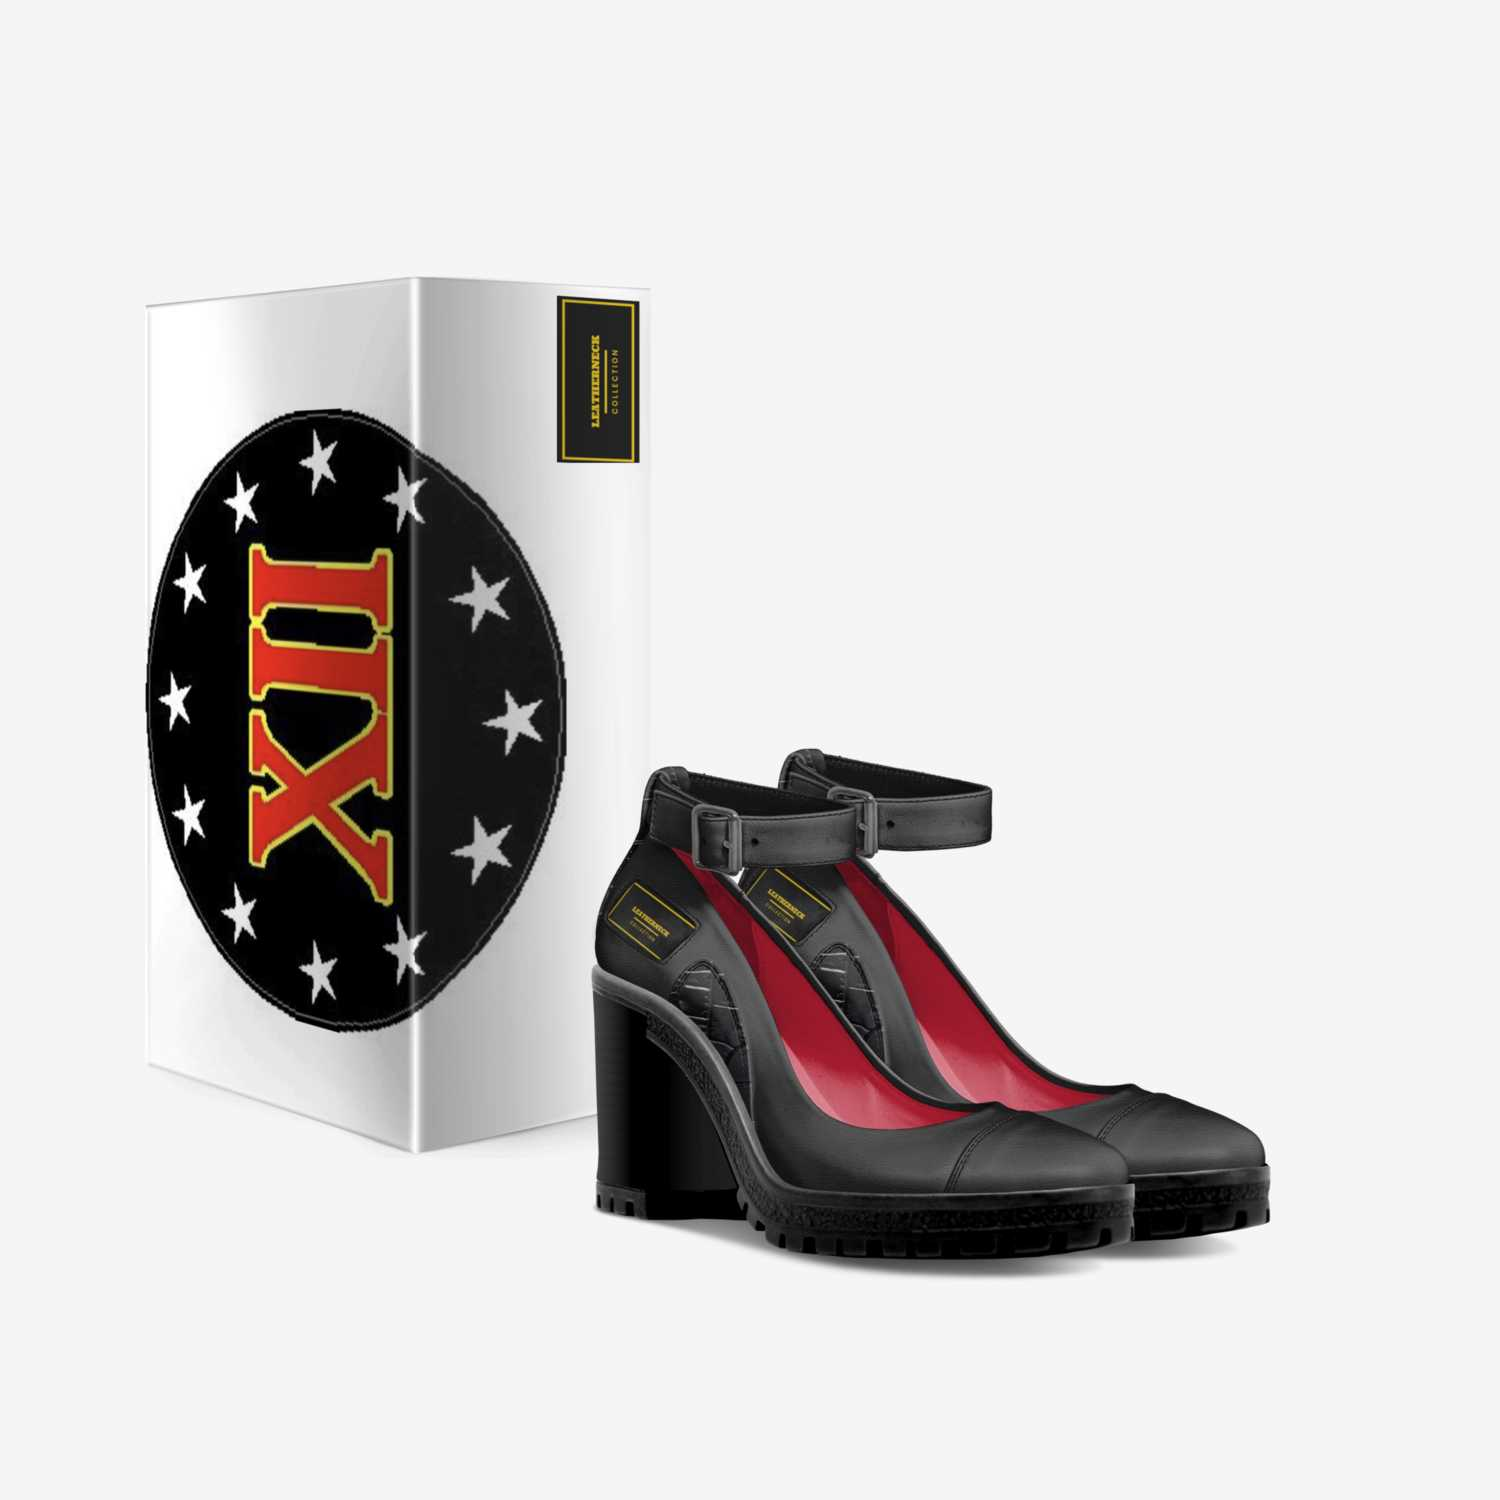 Leatherneck custom made in Italy shoes by Richard Dinnan | Box view